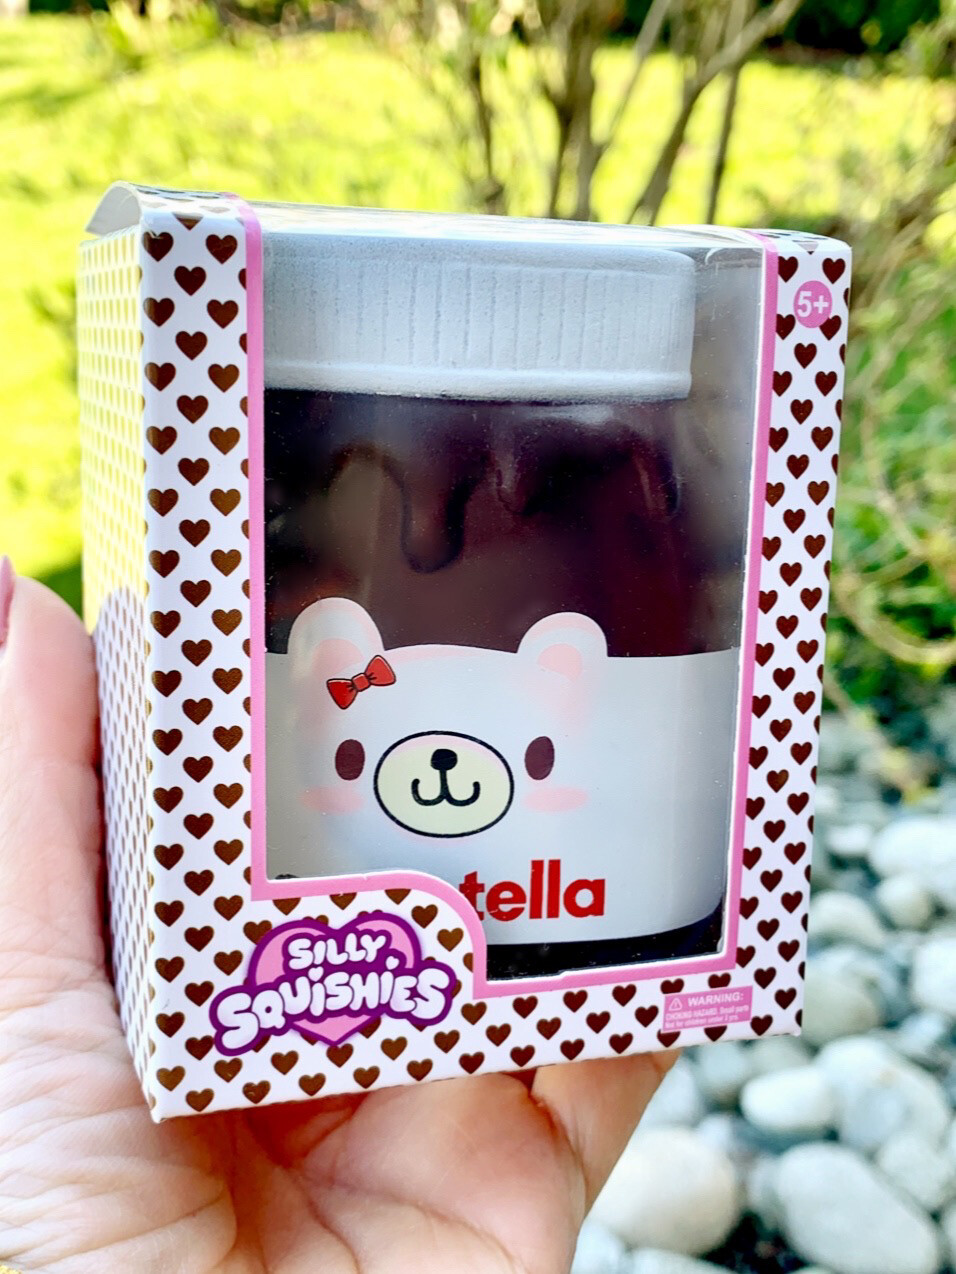 Silly Squishies Sweetella Nutella Squishy Toy